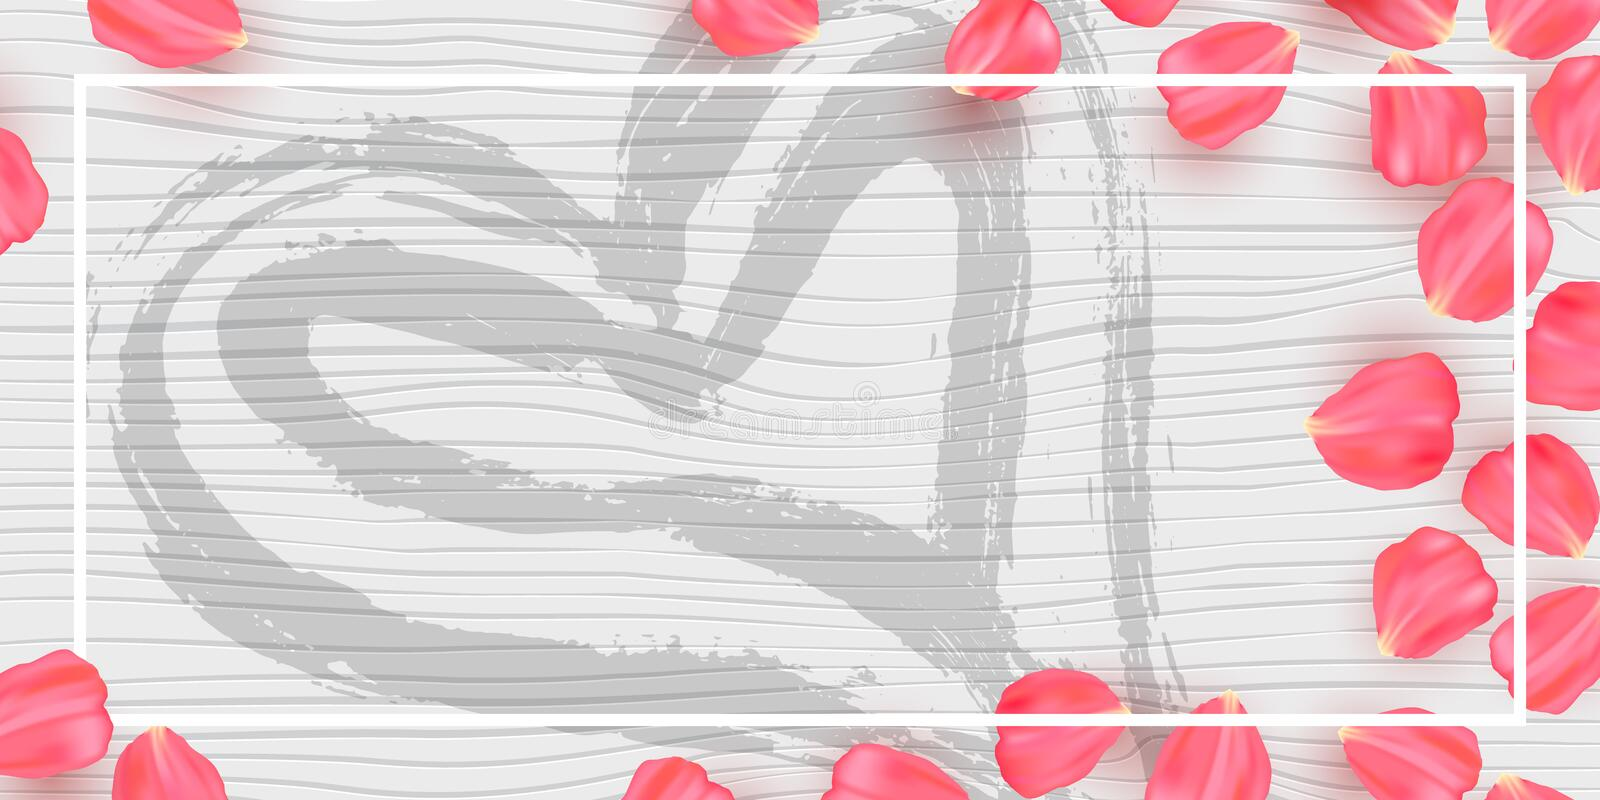 Rose petals on white wood texture. Background vector illustration